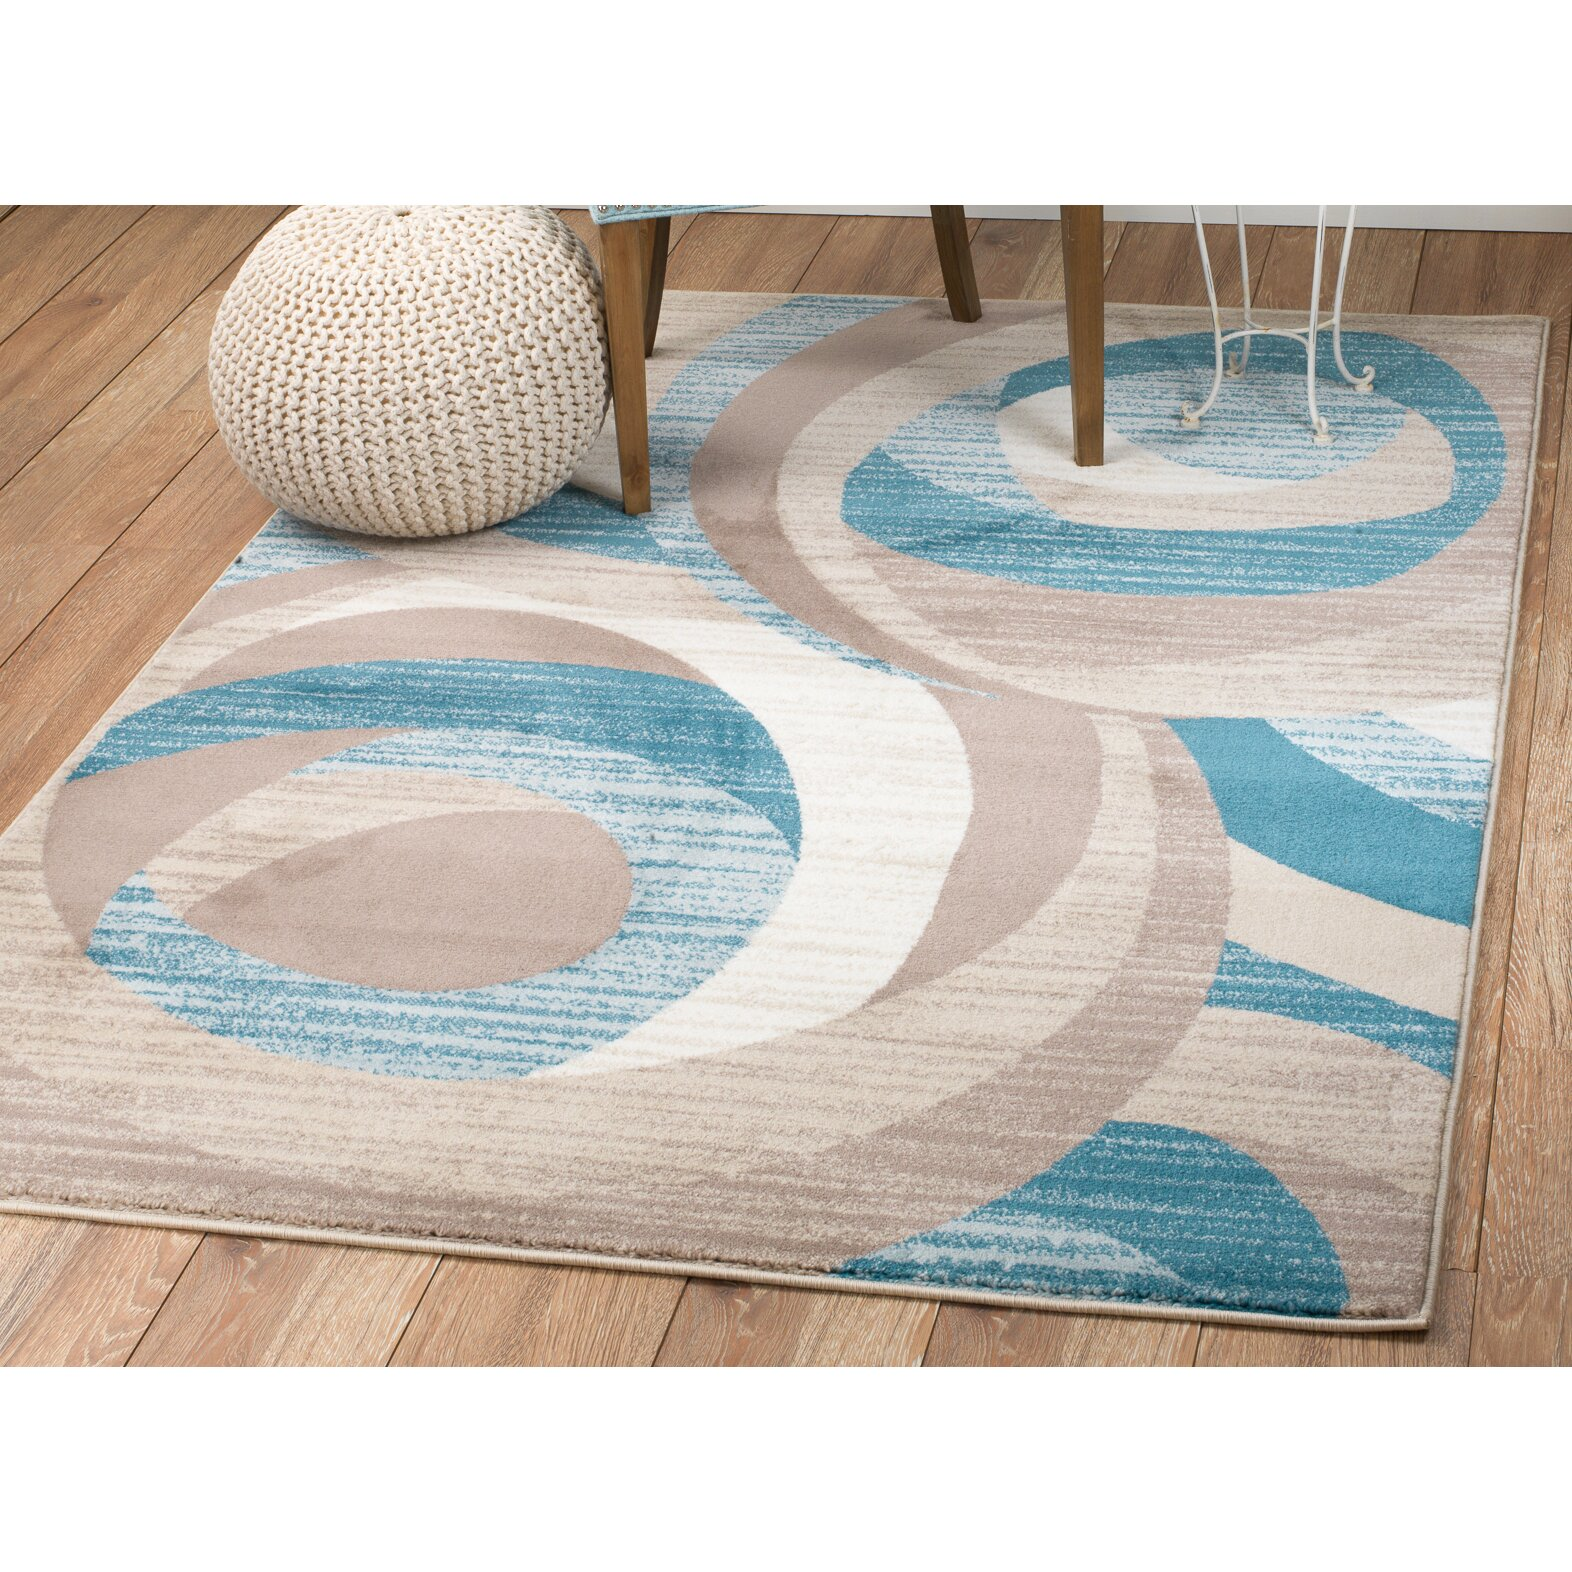 rug and decor inc summit blue brown area rug reviews